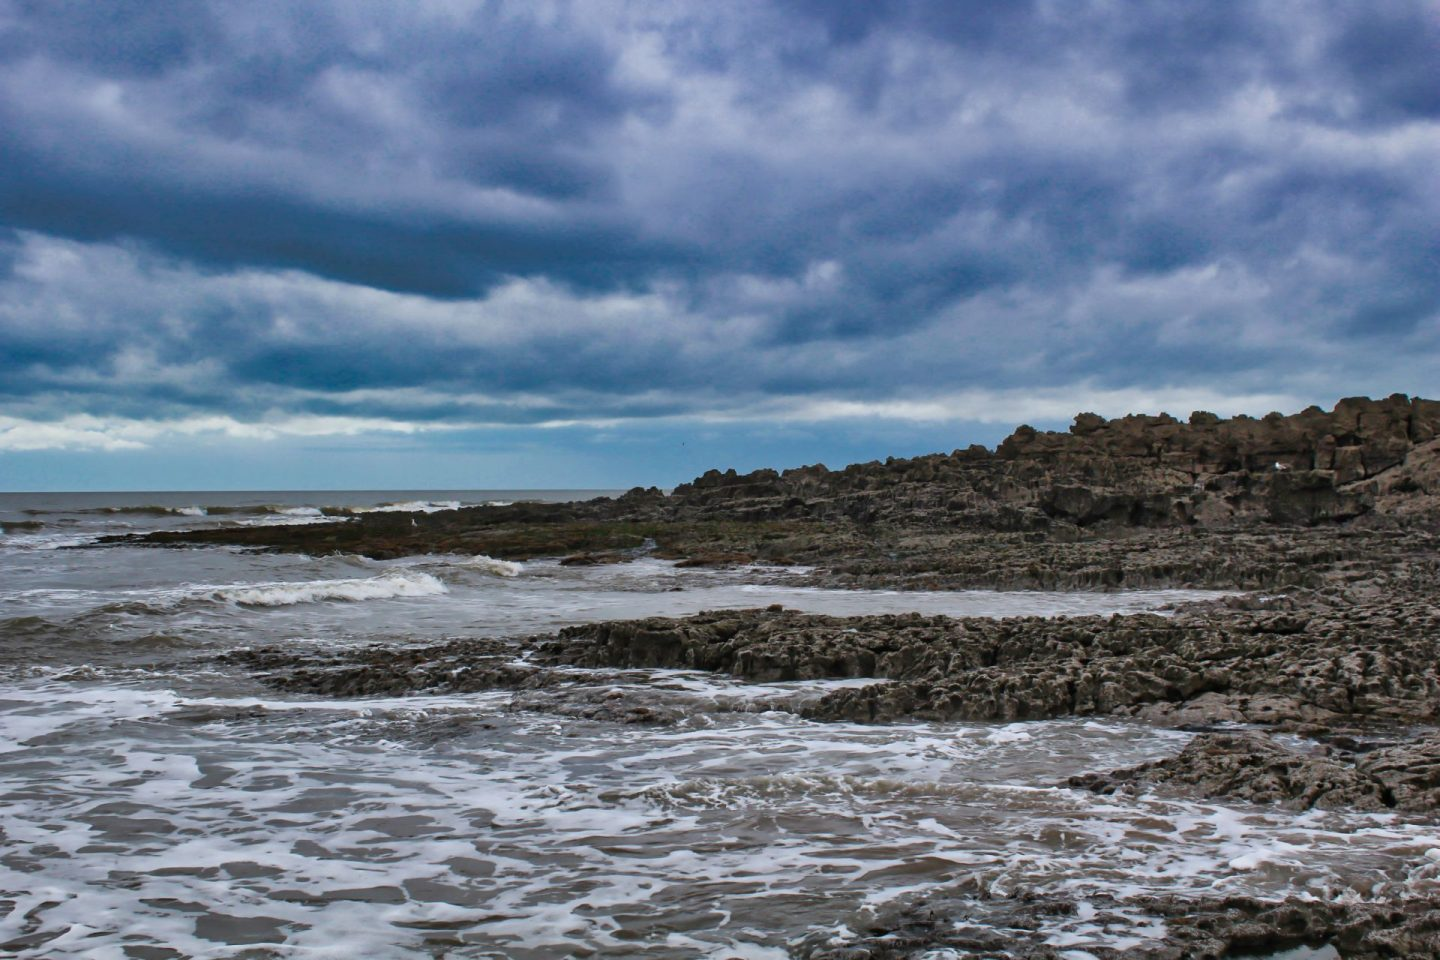 With a little help from my friends. A picture I took of the Welsh coast that was edited by a friend of mine.